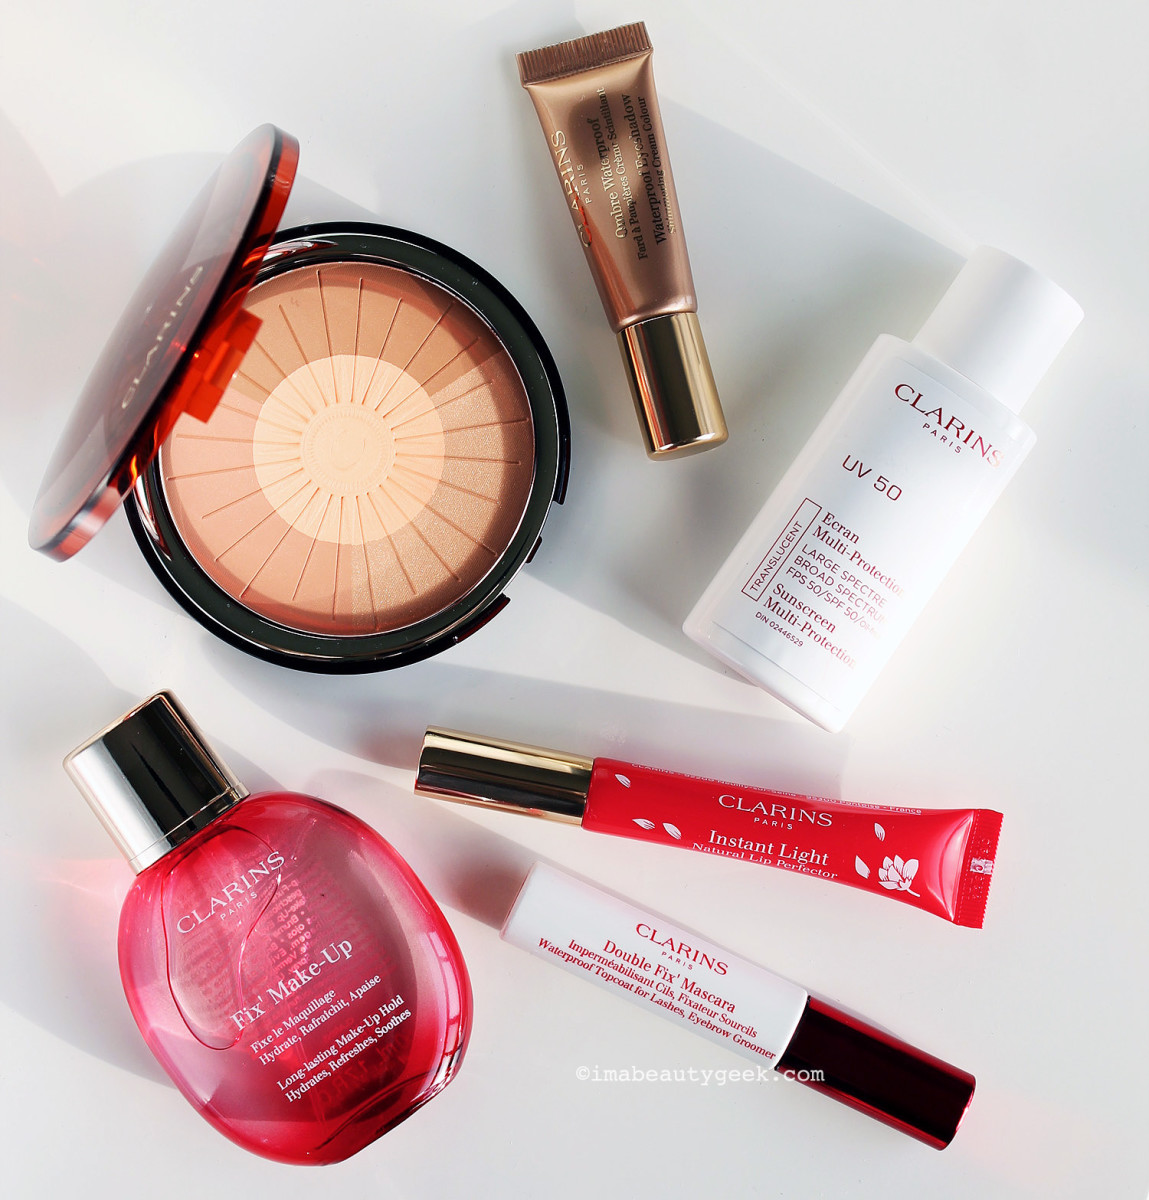 Clarins Summer 2016 and other new releases